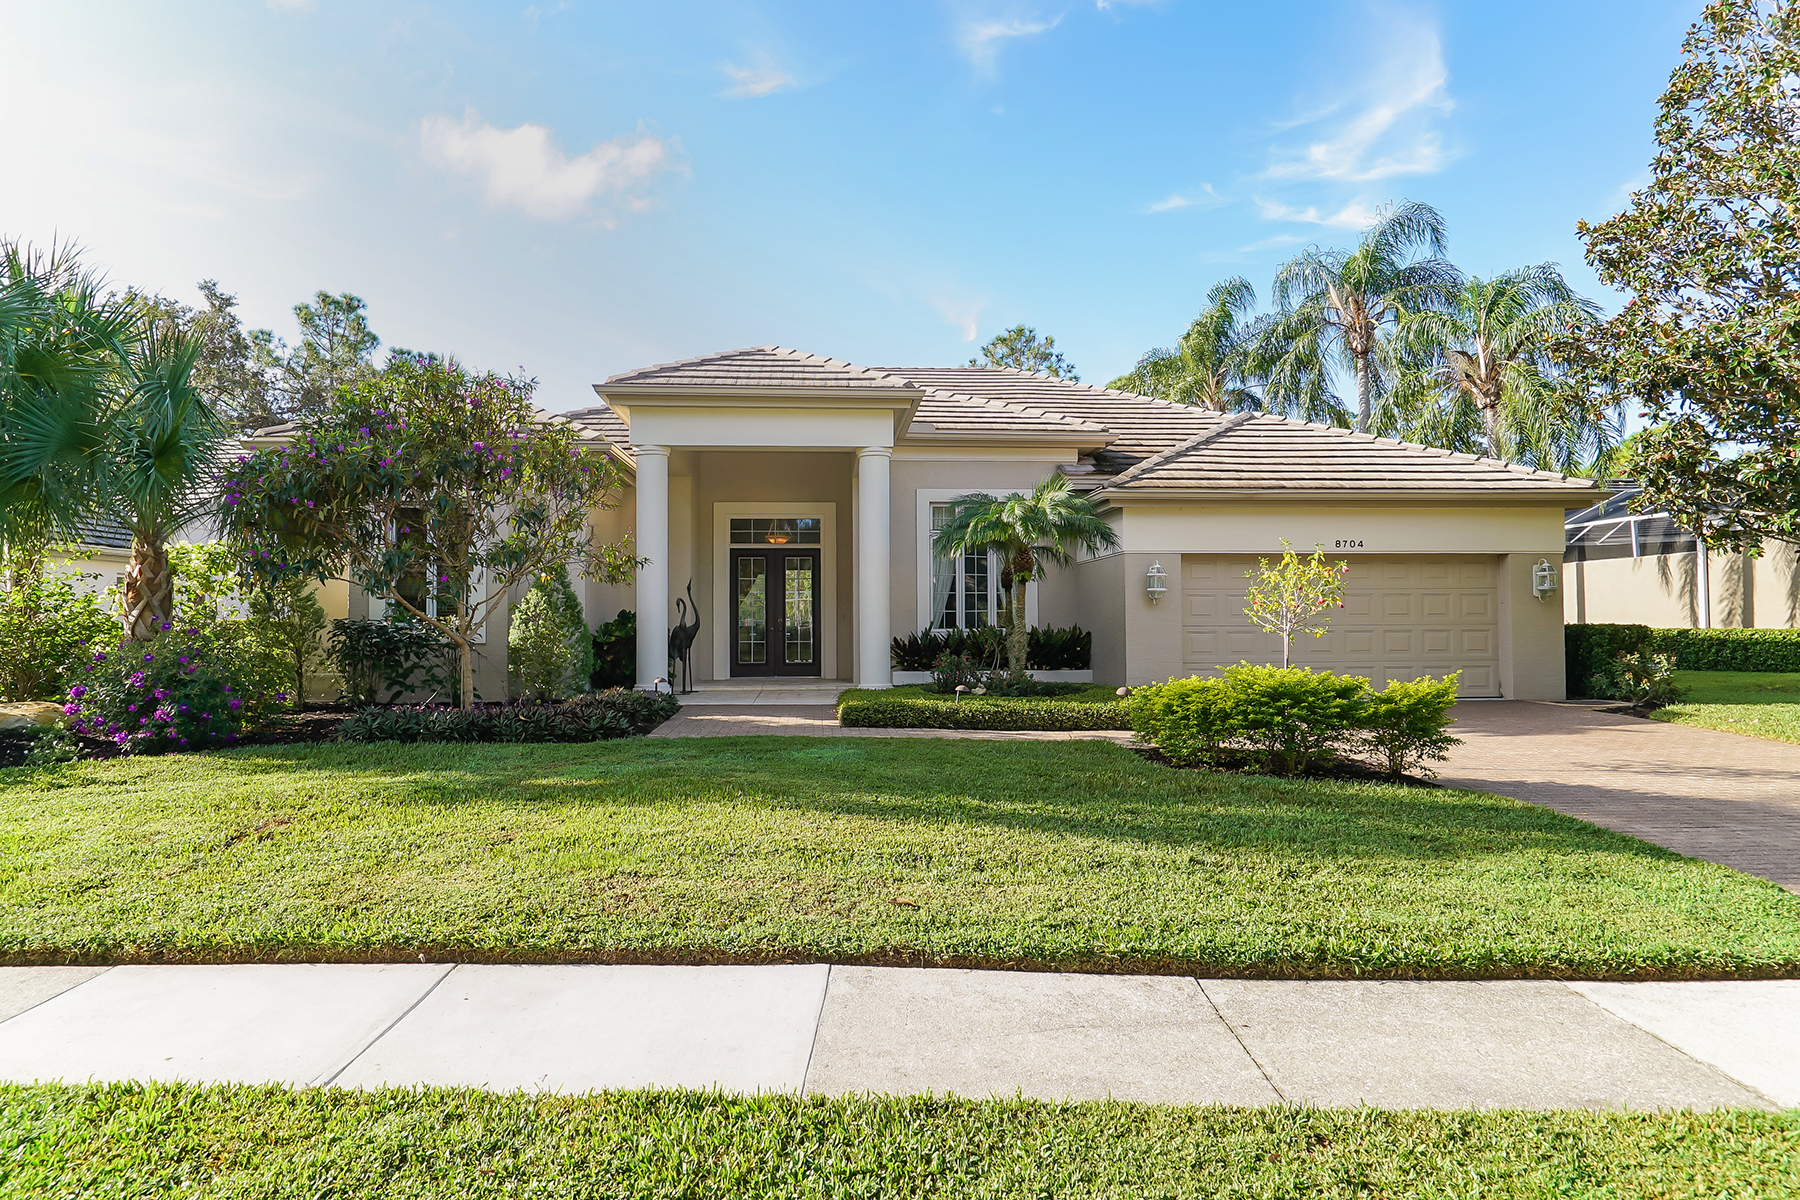 Single Family Home for Sale at ROSEDALE 8704 54th Ave E, Bradenton, Florida 34211 United States